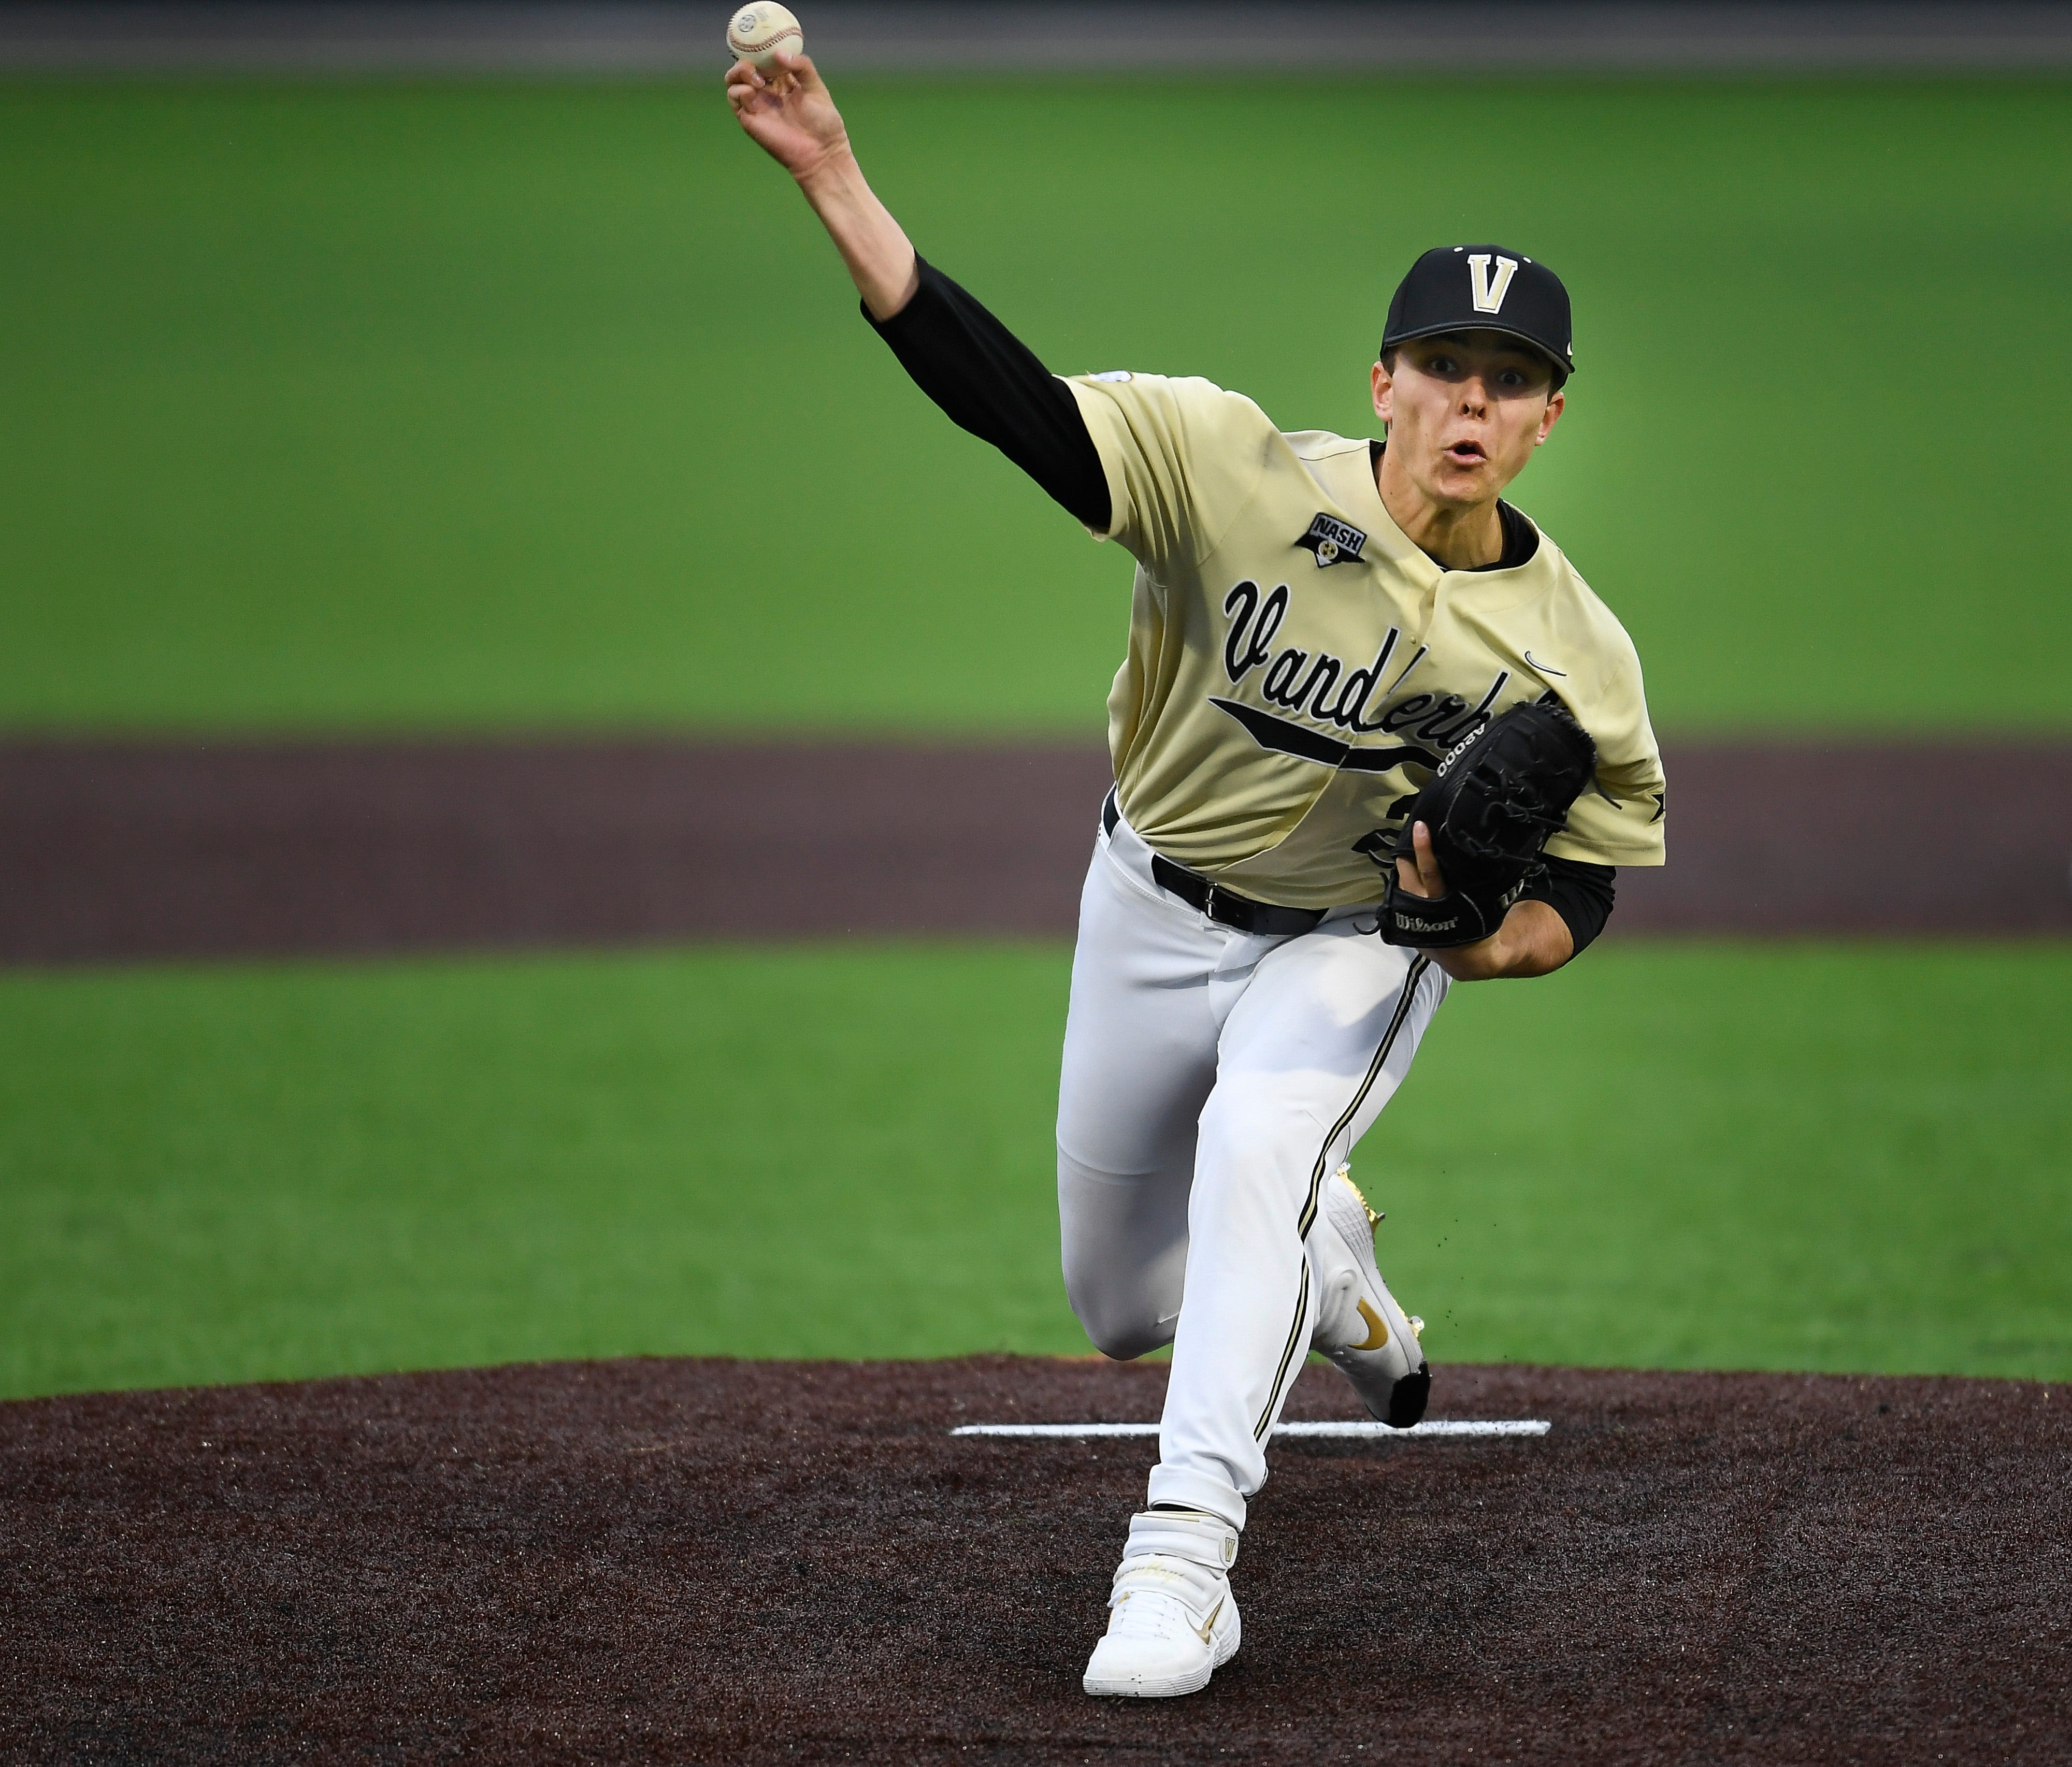 Vanderbilt baseball cruises as Jack  Leiter shines in college debut